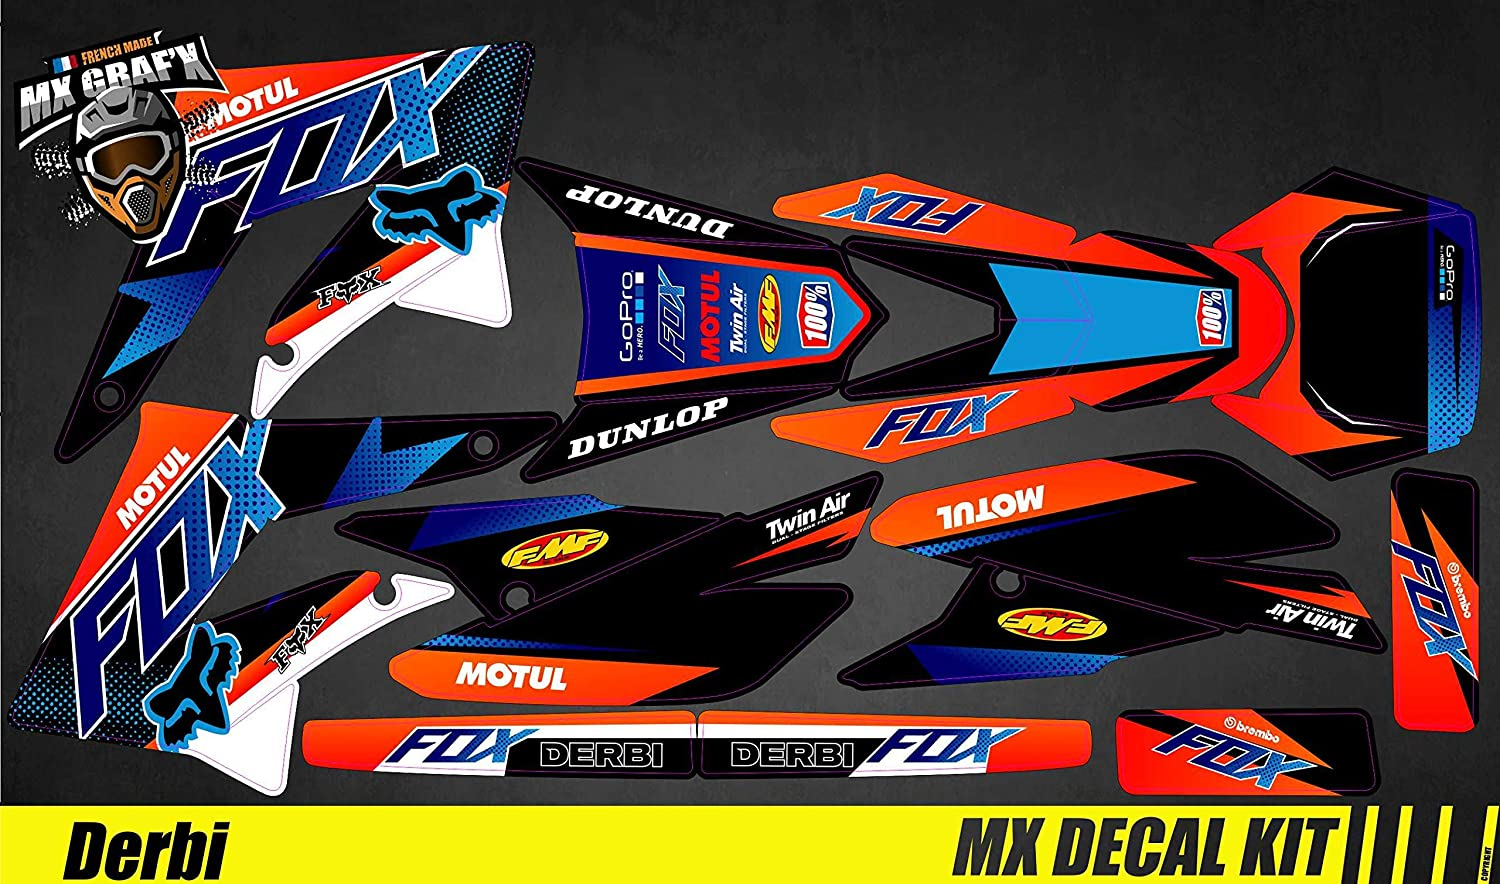 Kit Déco Moto para / MX Calcomanías Kit para Derbi 50 - Fox